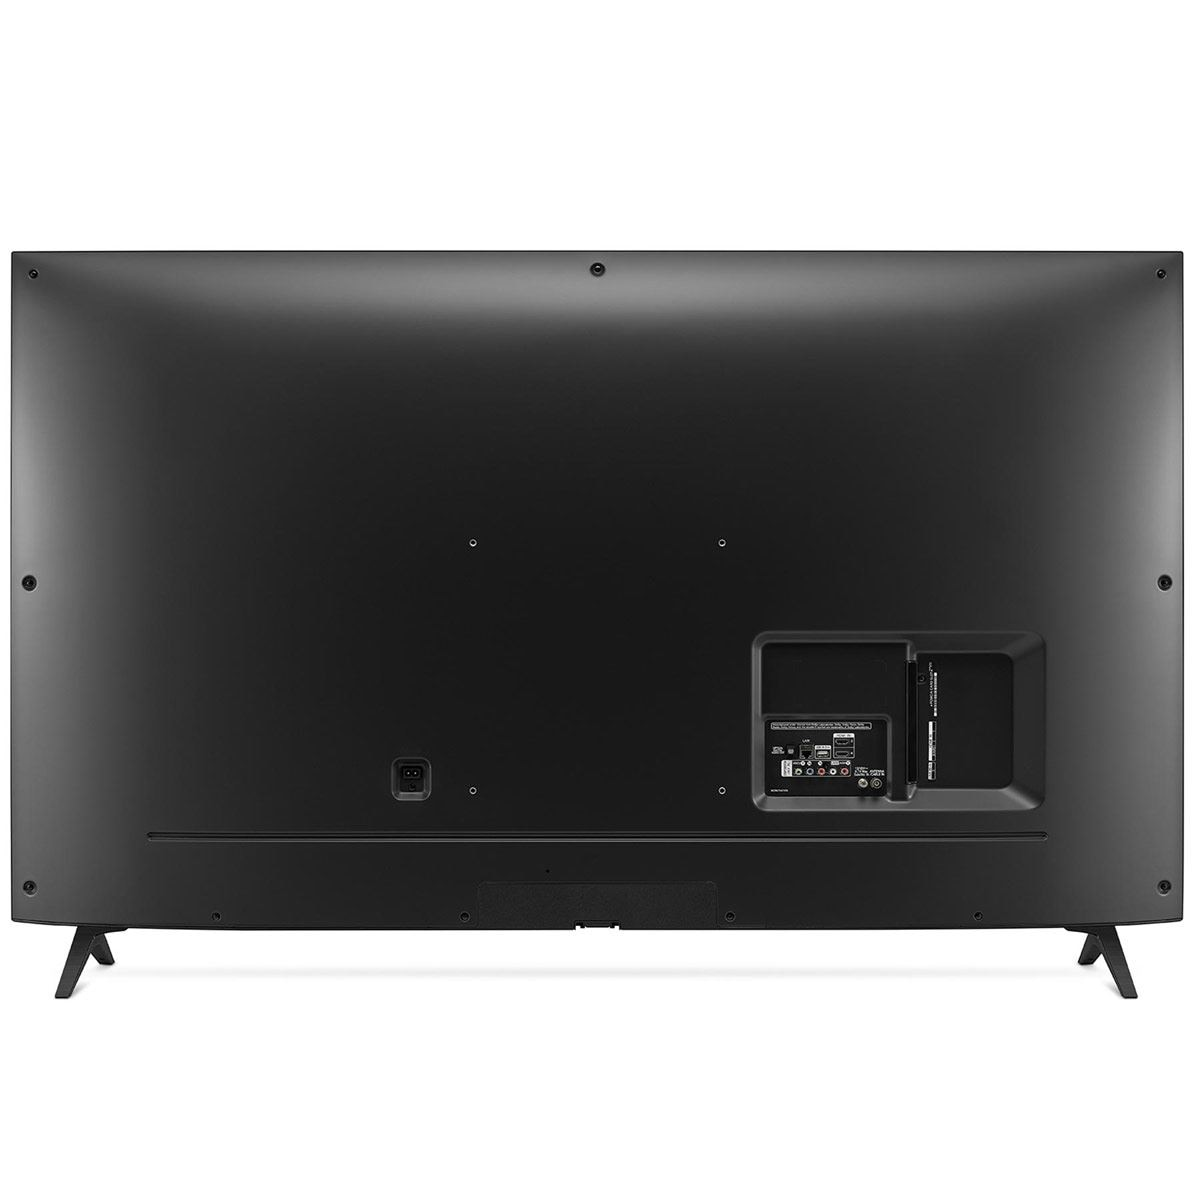 Pantalla LG UHD TV AI ThinQ 4K 55